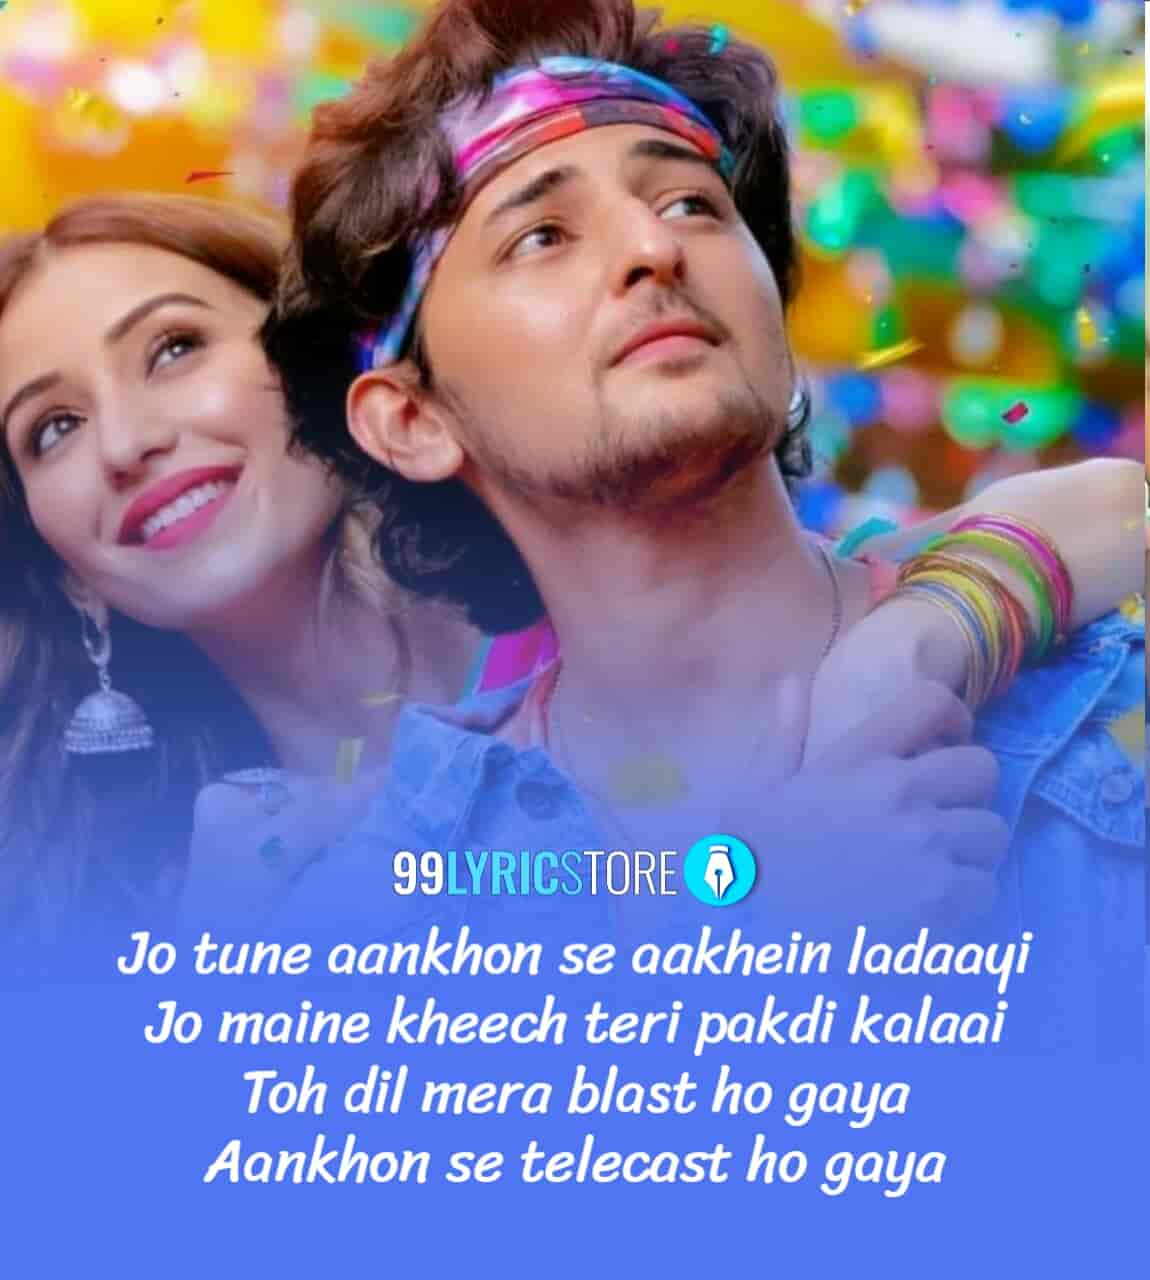 Dil Mera Blast Hindi song sung by Darshan Raval